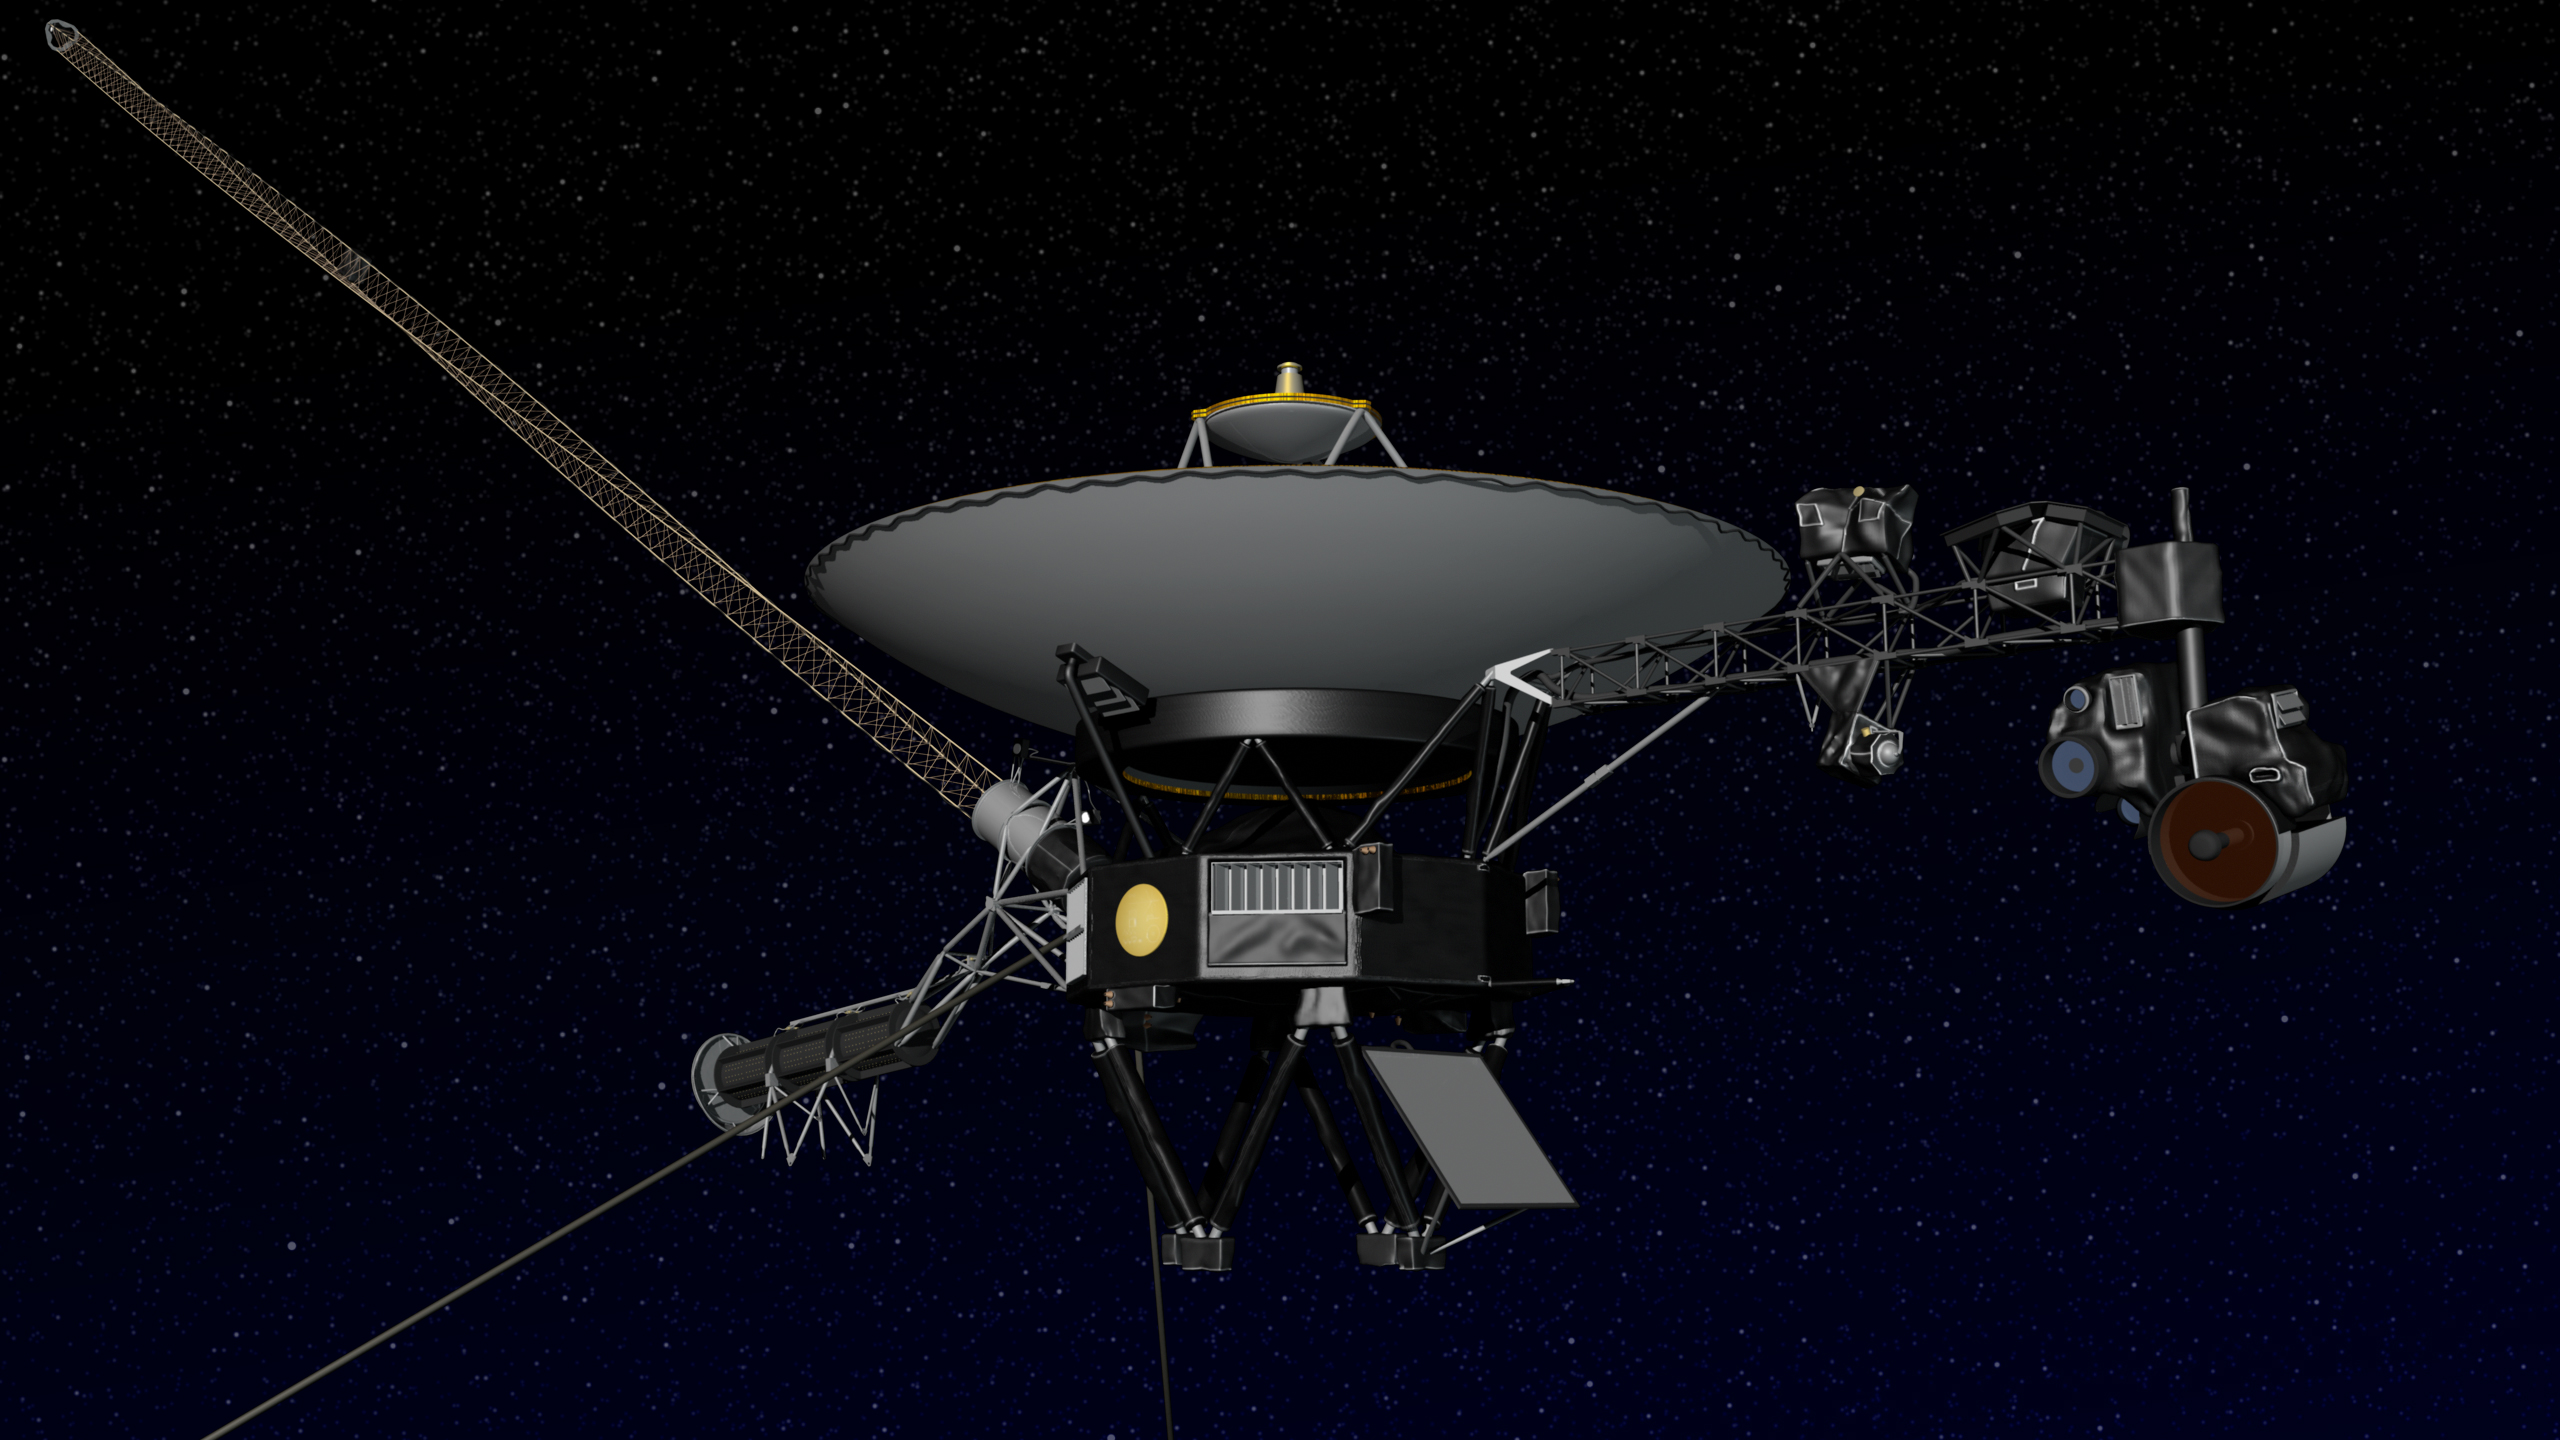 NASA - Data From NASA's Voyager 1 Point to Interstellar Future